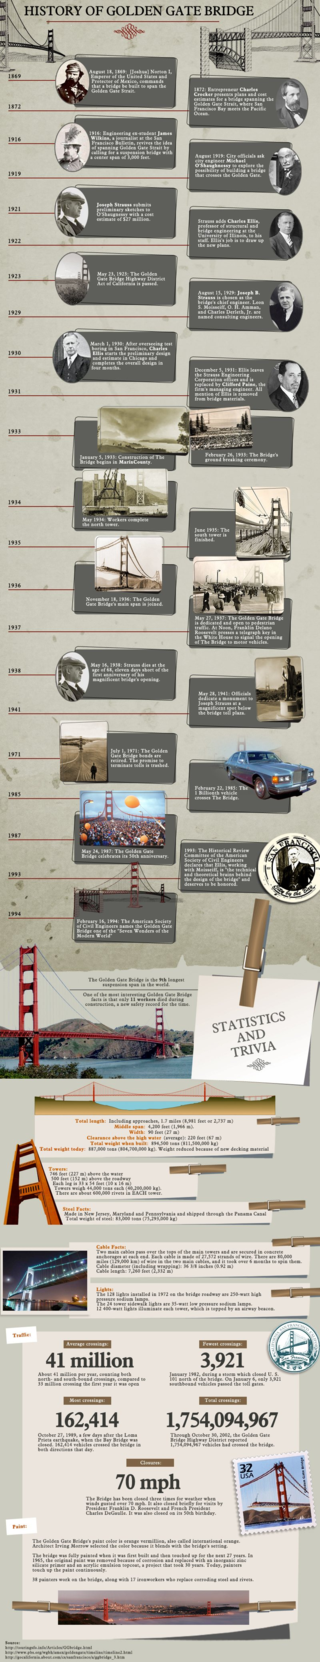 History-of-golden-gate-bridge